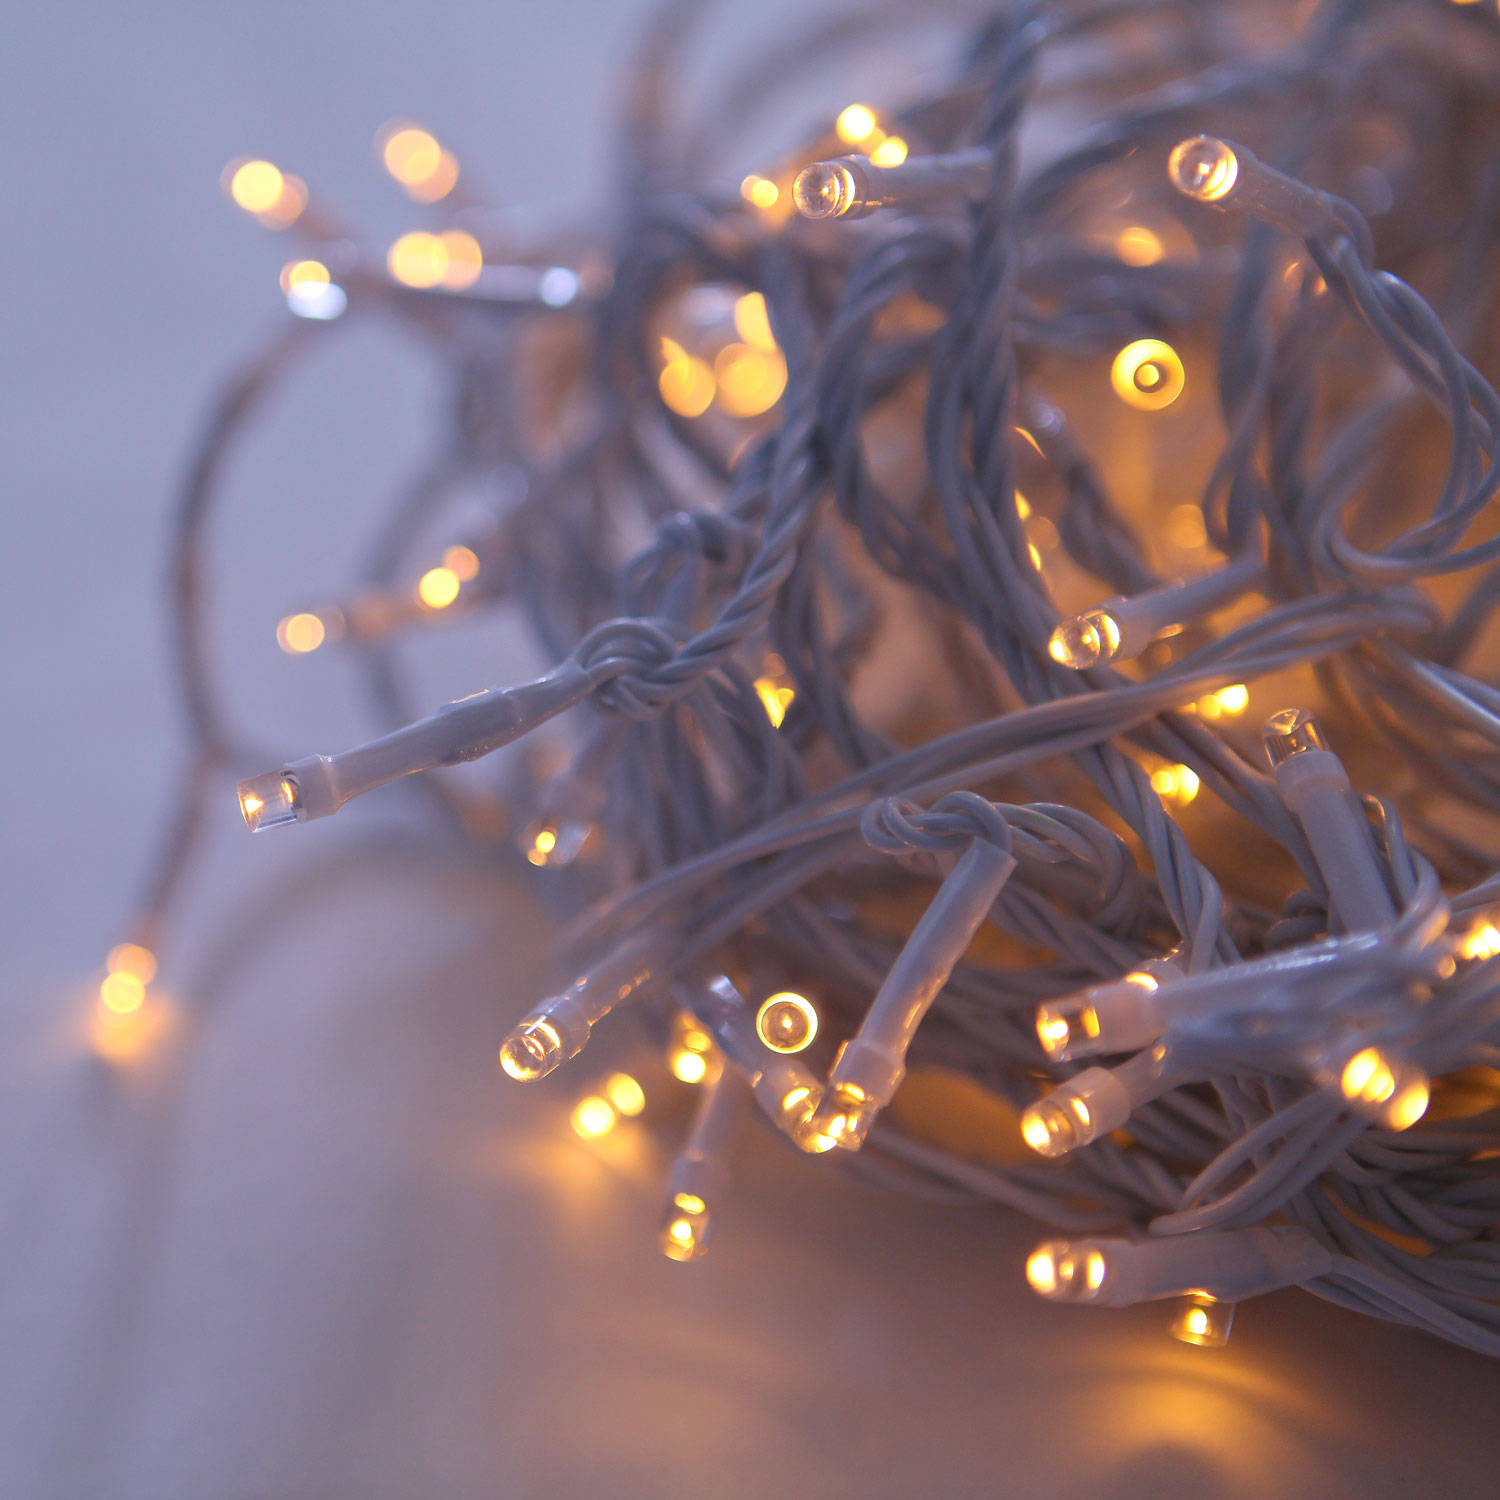 White String Christmas Lights Led : Lights.com String Lights Christmas Lights Warm White 200 LED Connectable White Cable ...